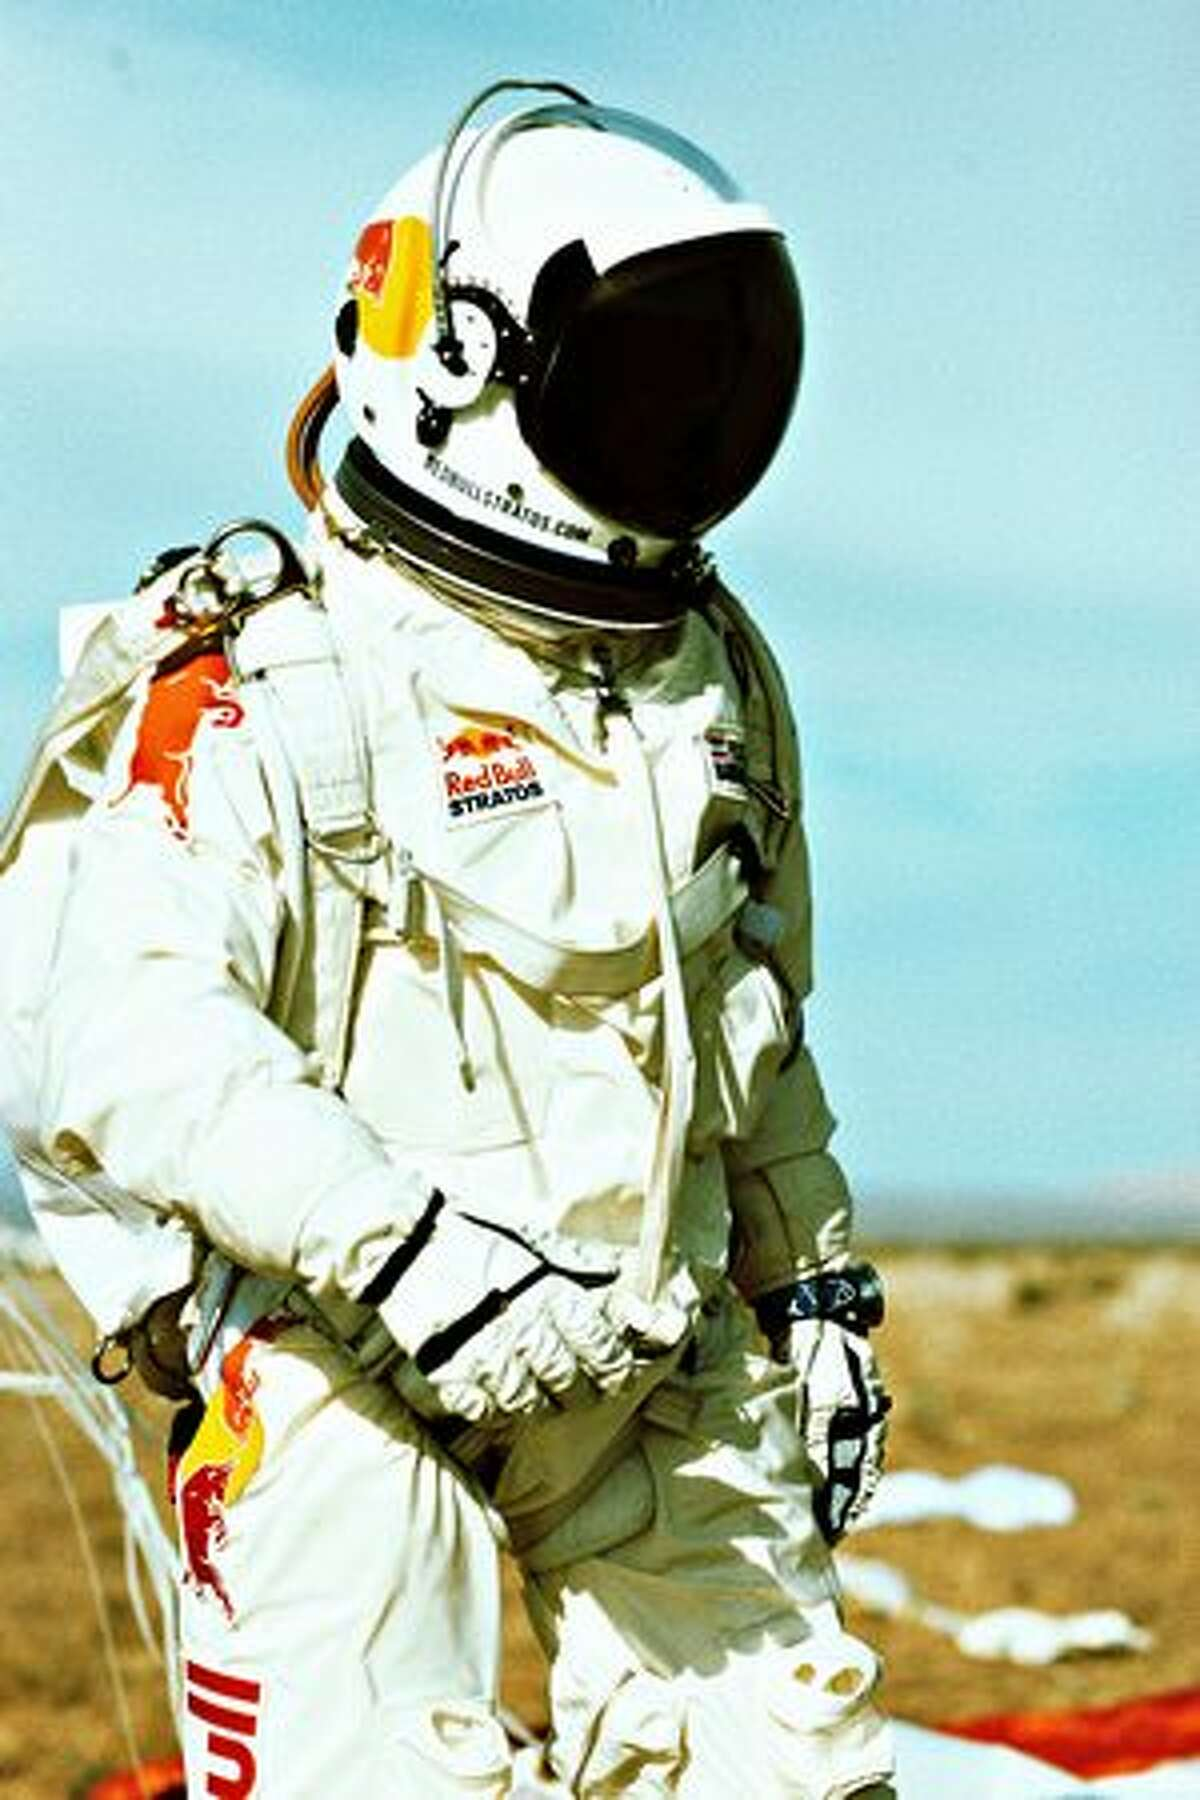 Felix Baumgartner in suit. (Sven Hoffmann/Red Bull Stratos)